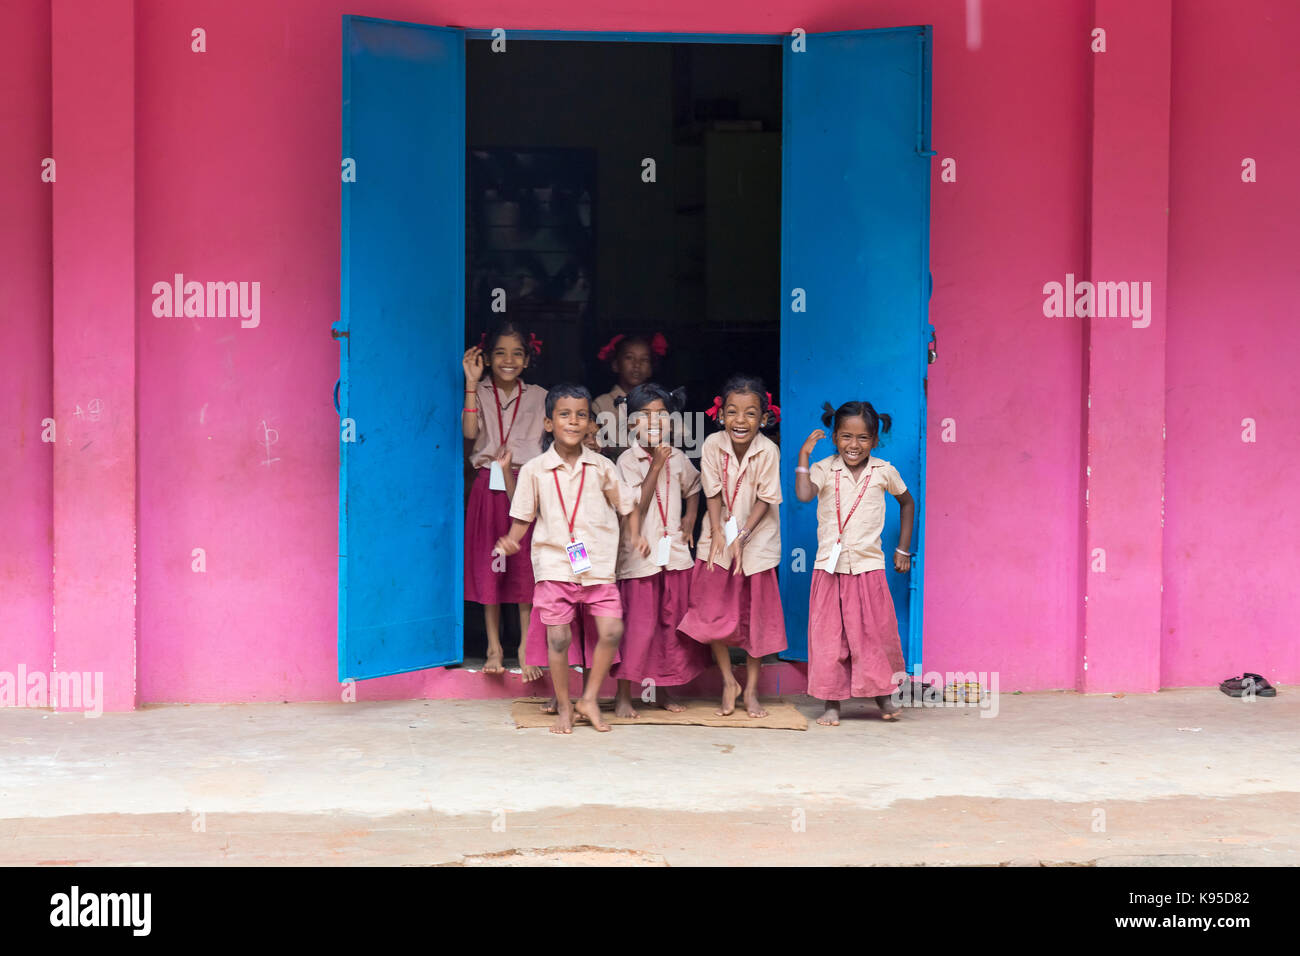 PONDICHERY, PUDUCHERY, INDIA - SEPTEMBER 04, 2017. Pink and blue school with happy chidren with uniforms near the Stock Photo